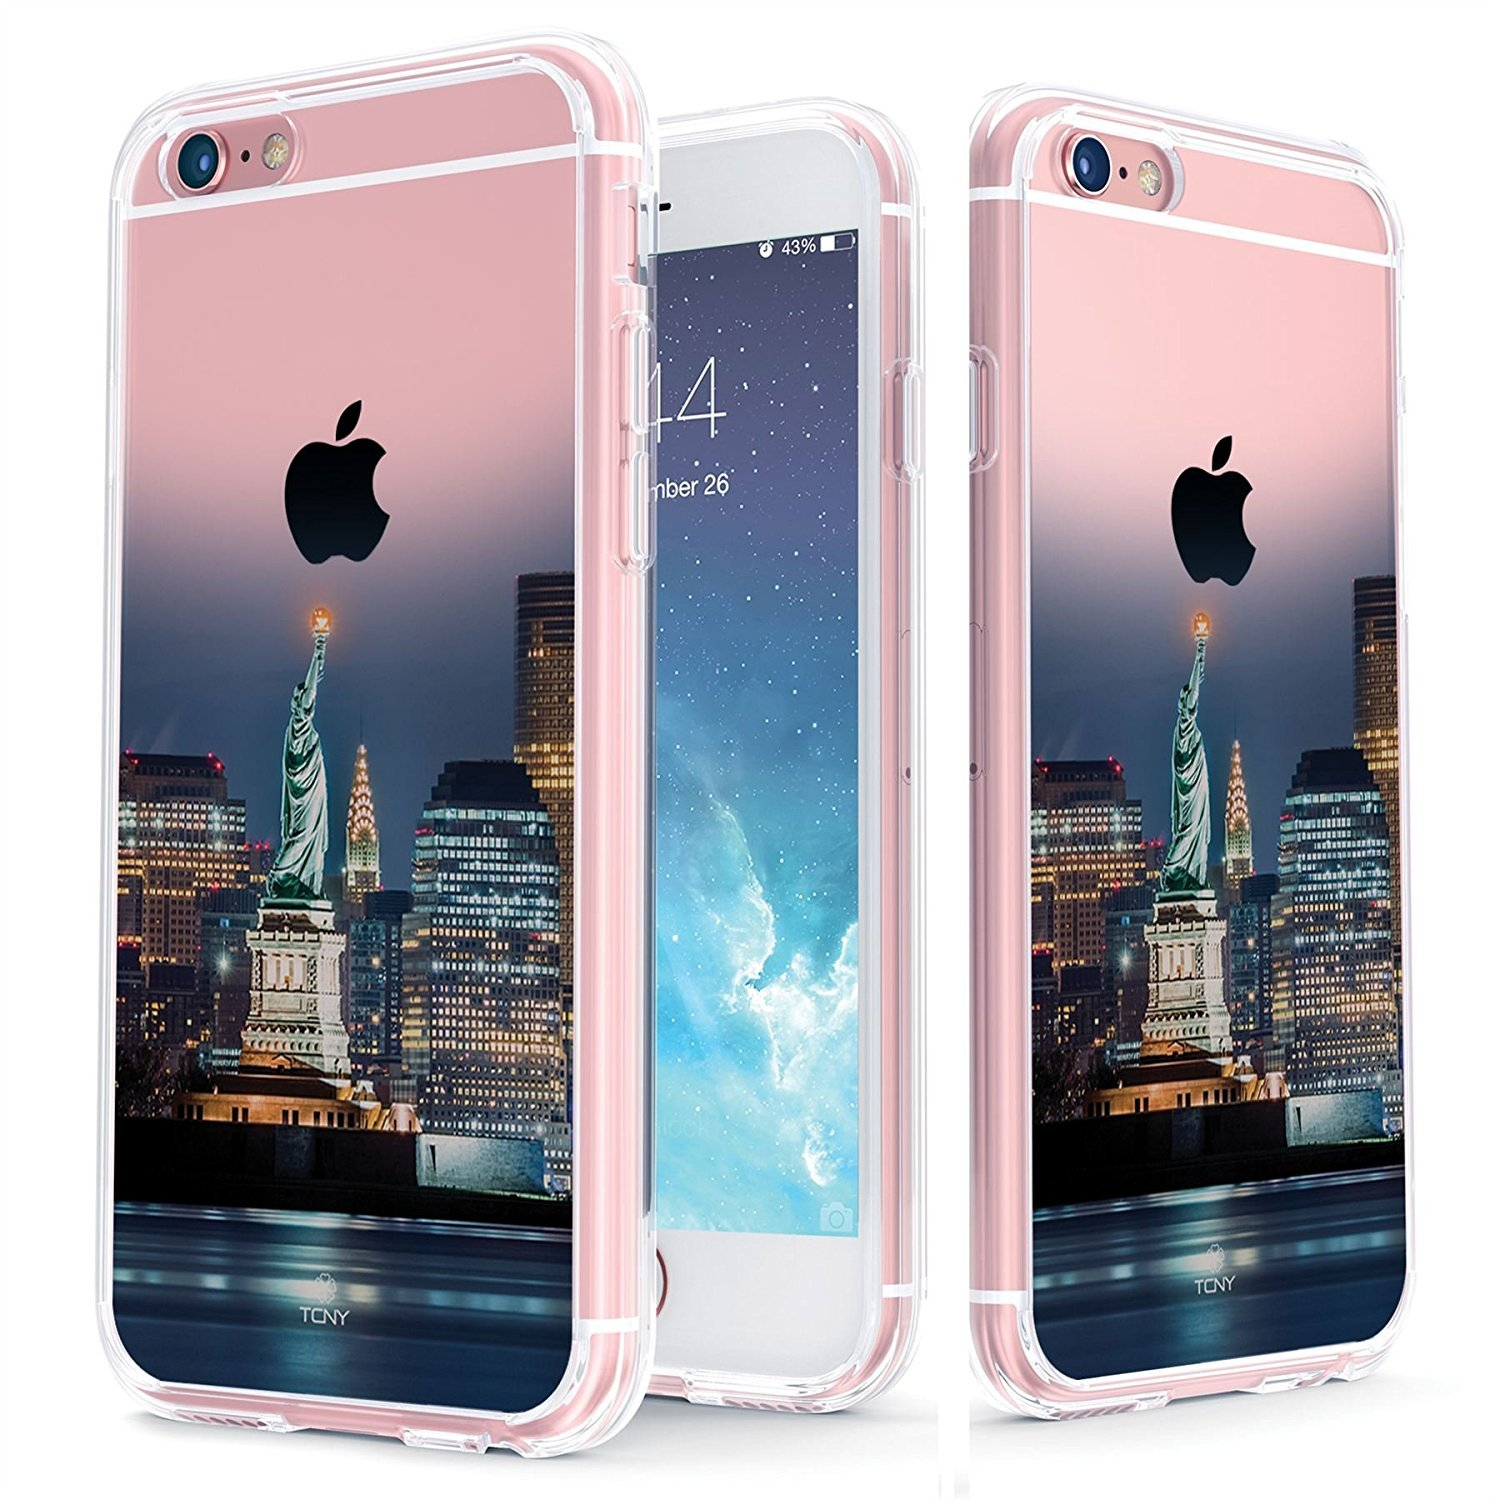 True Color Case Compatible with iPhone 6s Case - Clear-Shield Statue of Liberty [Urban Landmarks Collection] Printed on Clear Back - Soft and Hard Thin Shock Absorbing Protective Bumper Cover